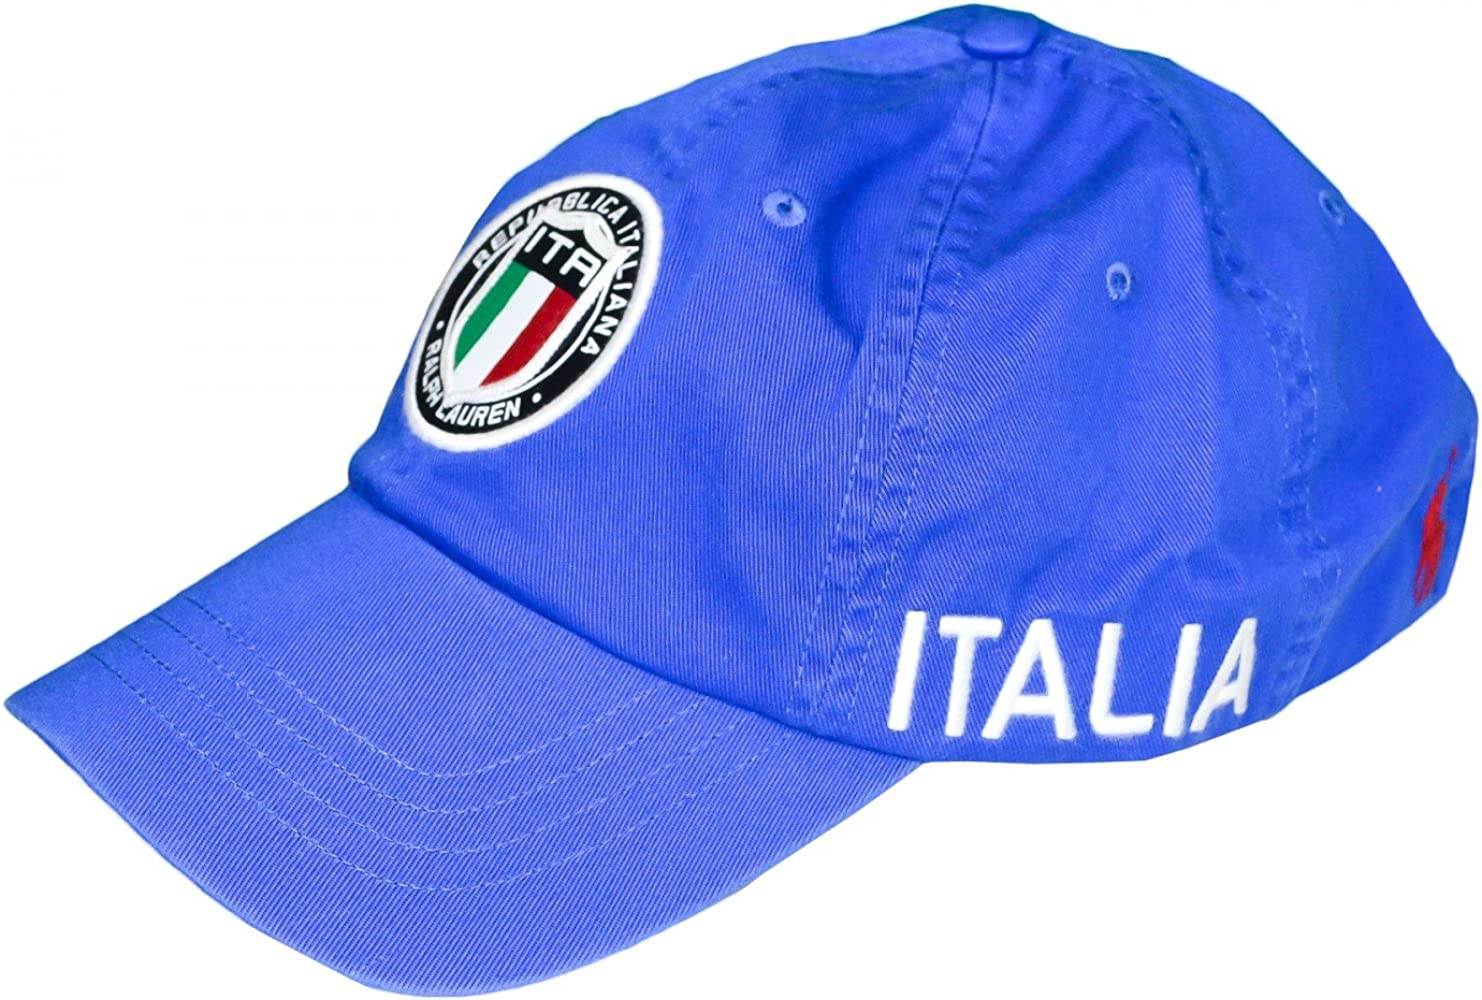 Ralph Lauren - Polo Gorra - Italia Adventur: Amazon.es: Ropa y ...